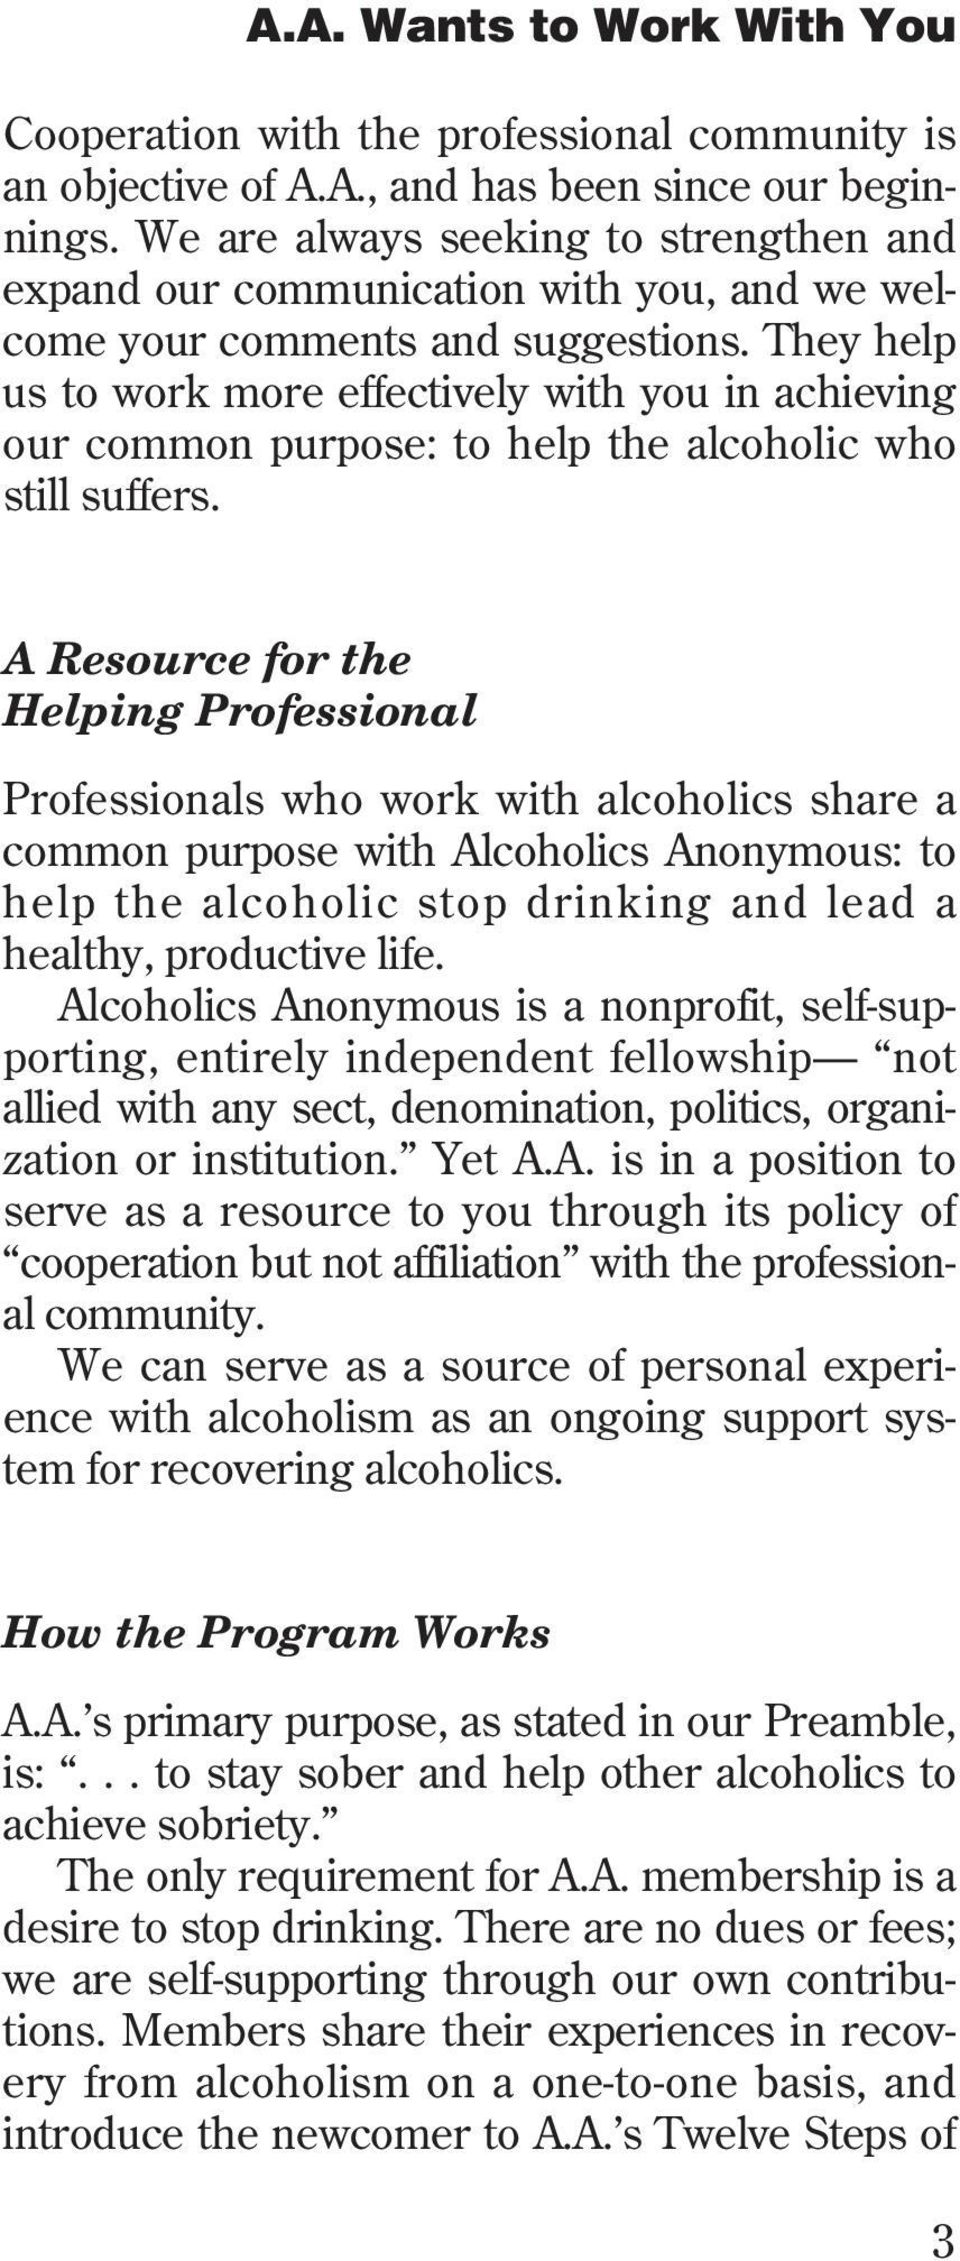 They help us to work more effectively with you in achieving our common purpose: to help the alcoholic who still suffers.